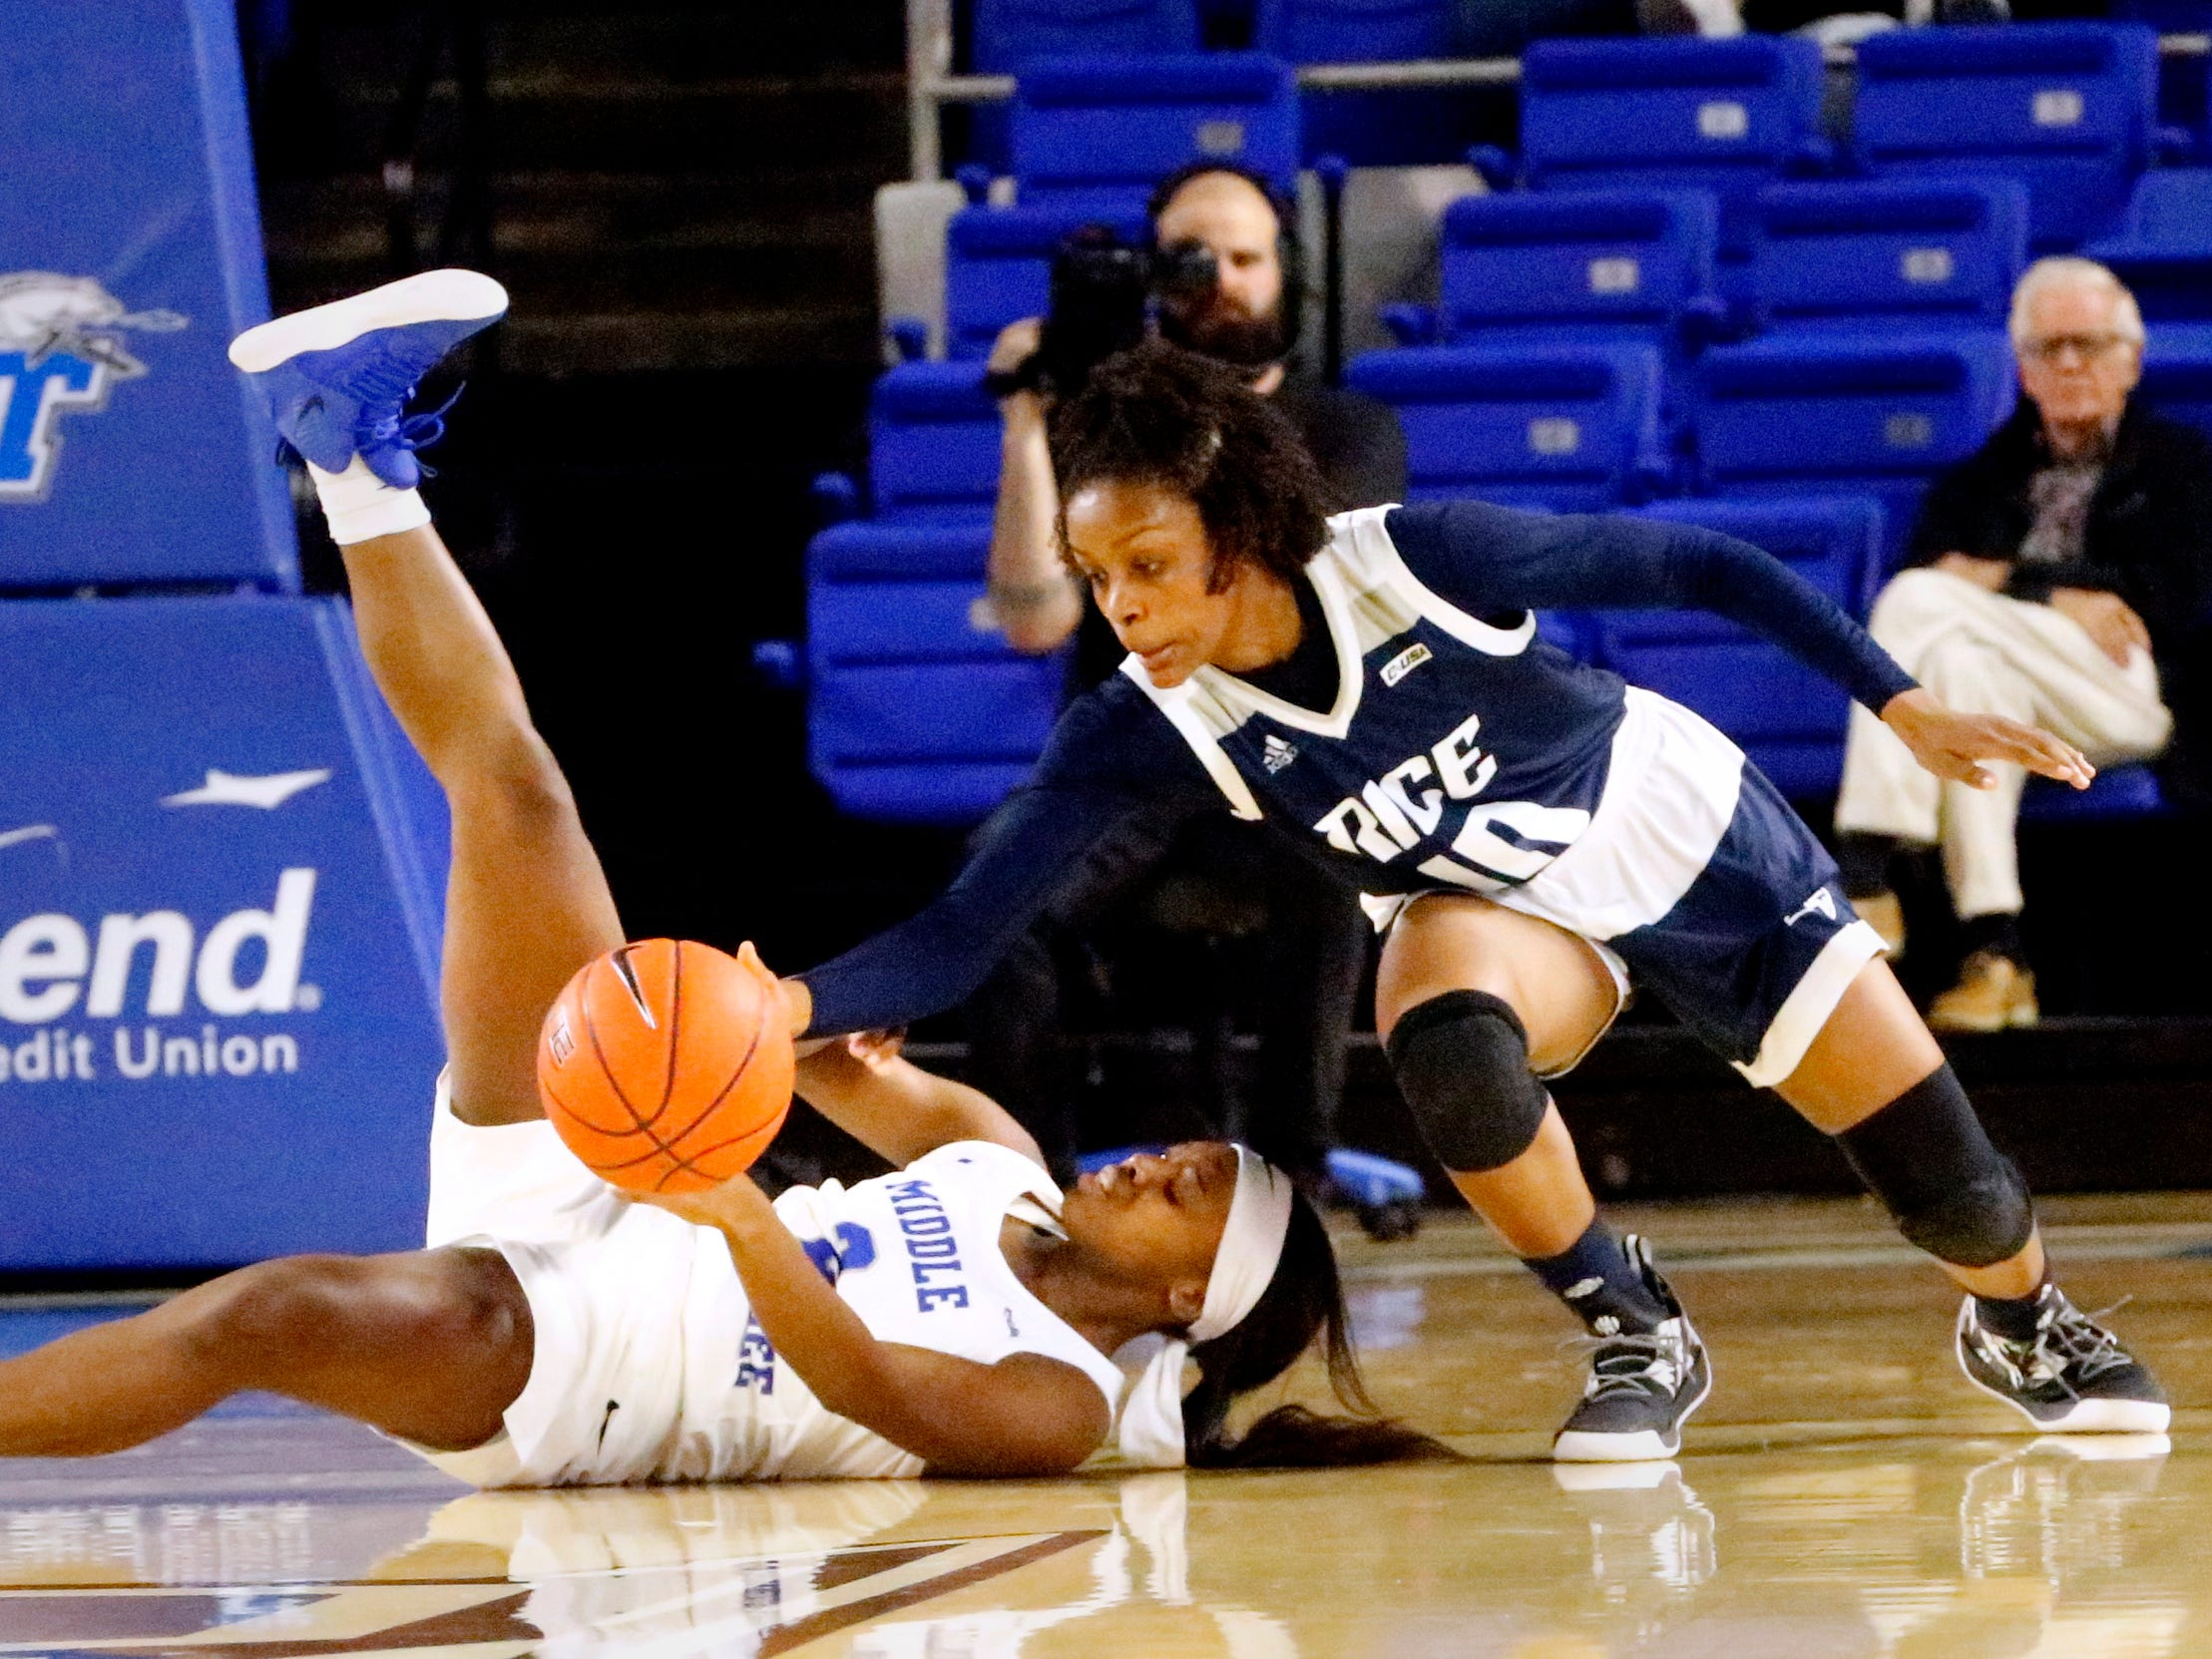 MTSU's guard Taylor Sutton (2) tries to keep control of the ball after fallign to the ground as Rice's guard Jasmine Smith (10) goes after the ball on Thursday Jan. 24, 2019.